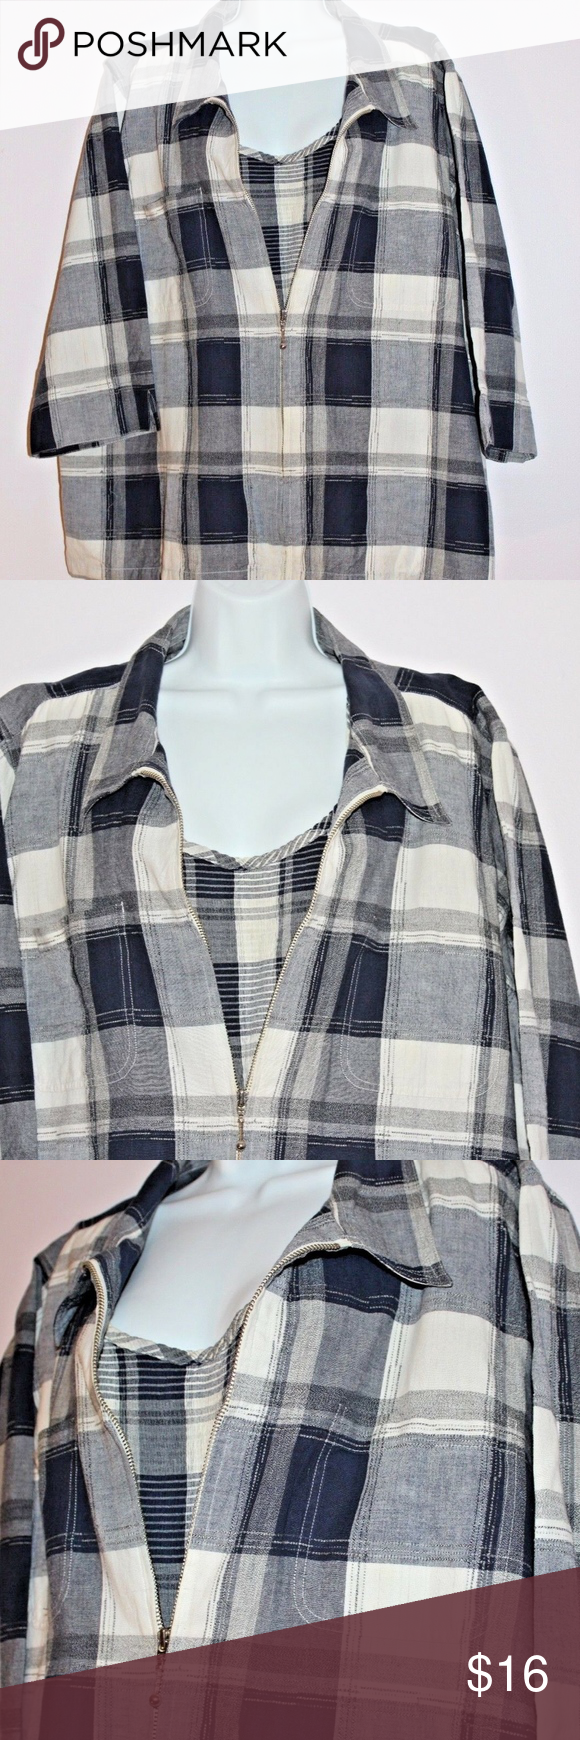 6046f16a Cato carolina colours 28w plus Buffalo Plaid Set Cato Carolina Colours size  28w buffalo plaid blouse